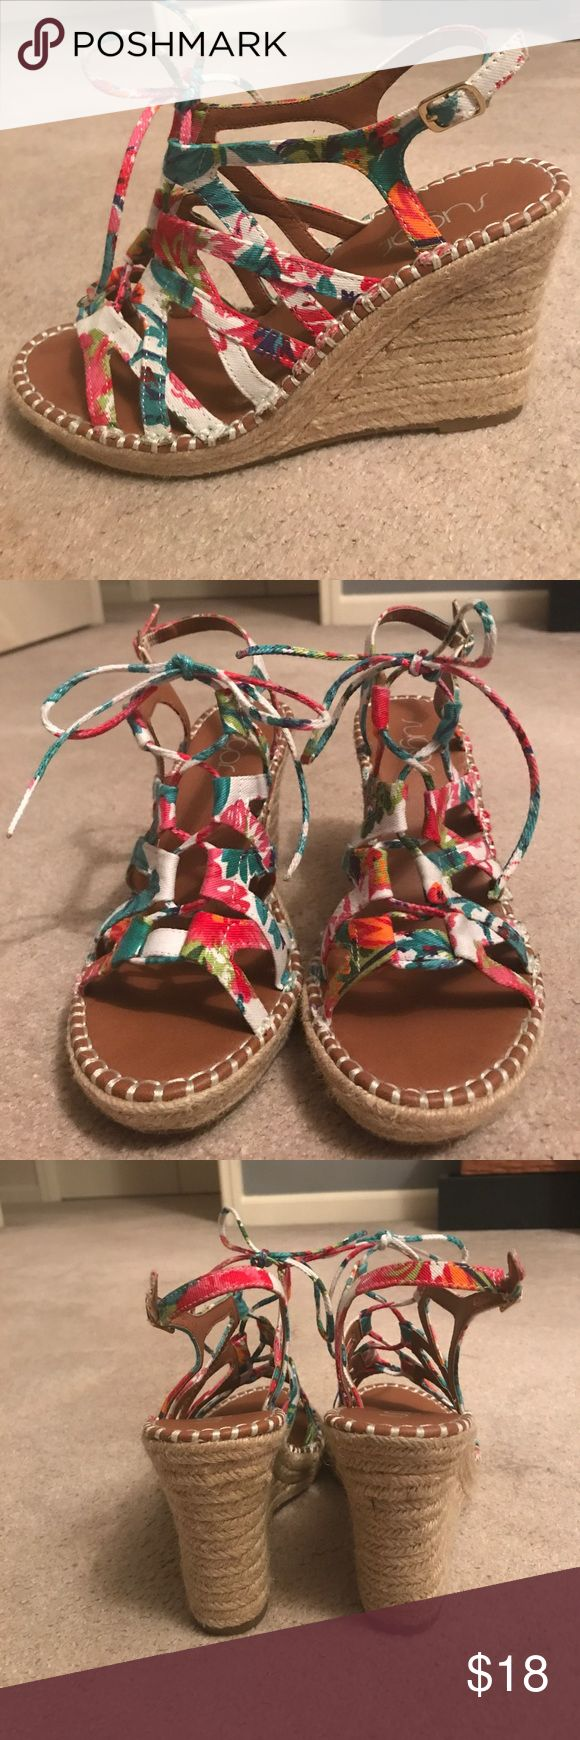 Sugar Lace Up Multi Color Espadrilles Sz. 8 Sugar Lace Up Multi Color Espadrilles Sz. 8 - Only worn once. No scuffs, marks, discoloration, or other signs of wear. From a smoke free home. Feel free to make an offer or bundle to save! sugar Shoes Espadrilles